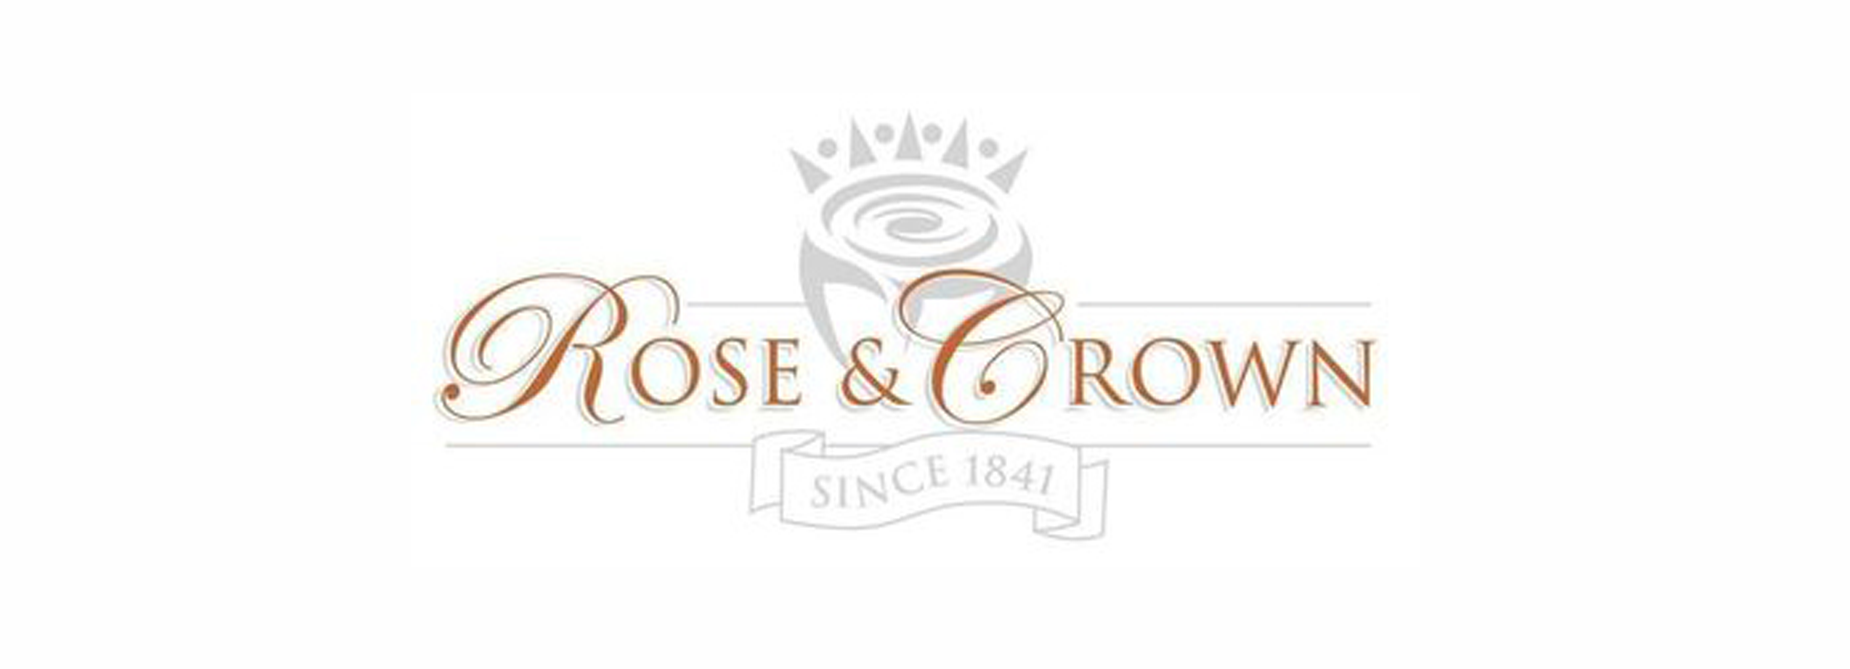 The Rose and Crown logo